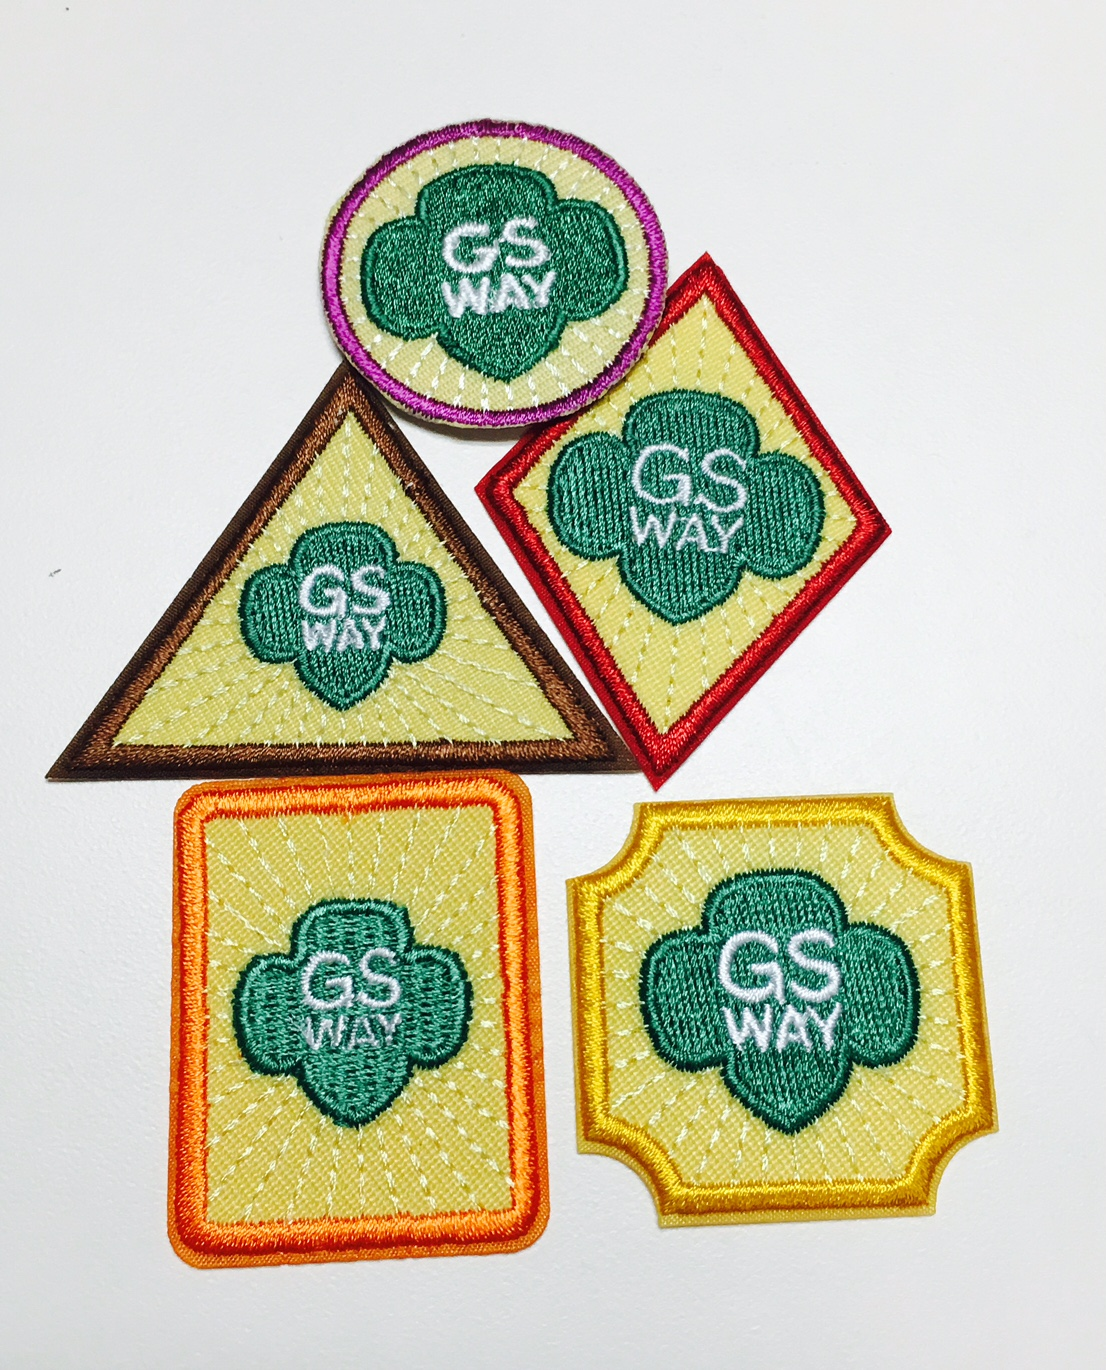 girl scout way badge workshop celebrates traditions gsco